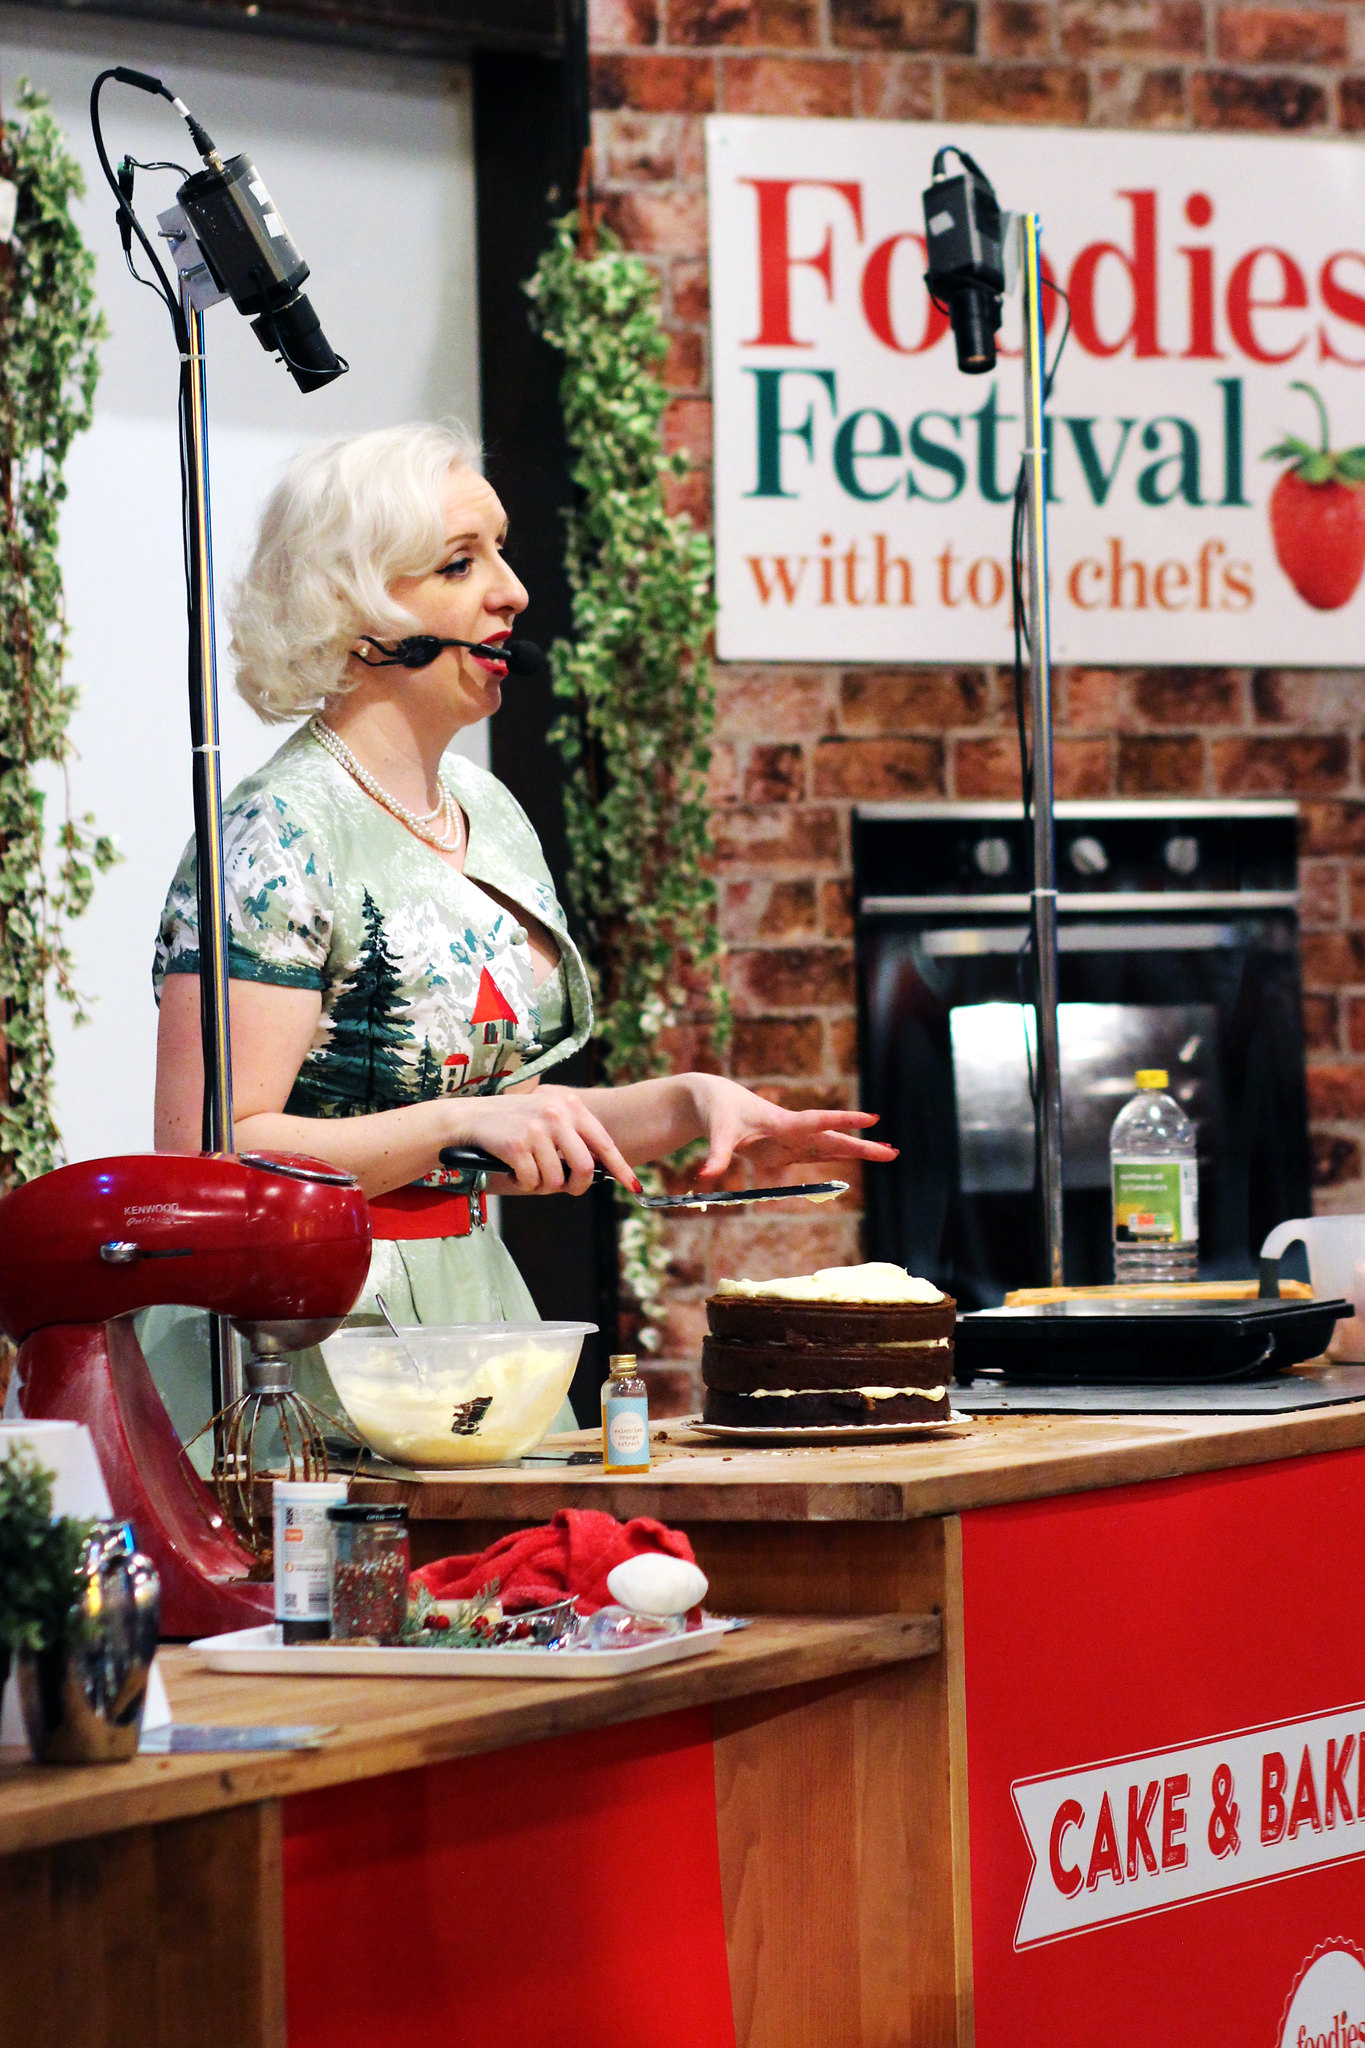 Foodies Festival Edinburgh Christmas lifestyle blogger The Little Things